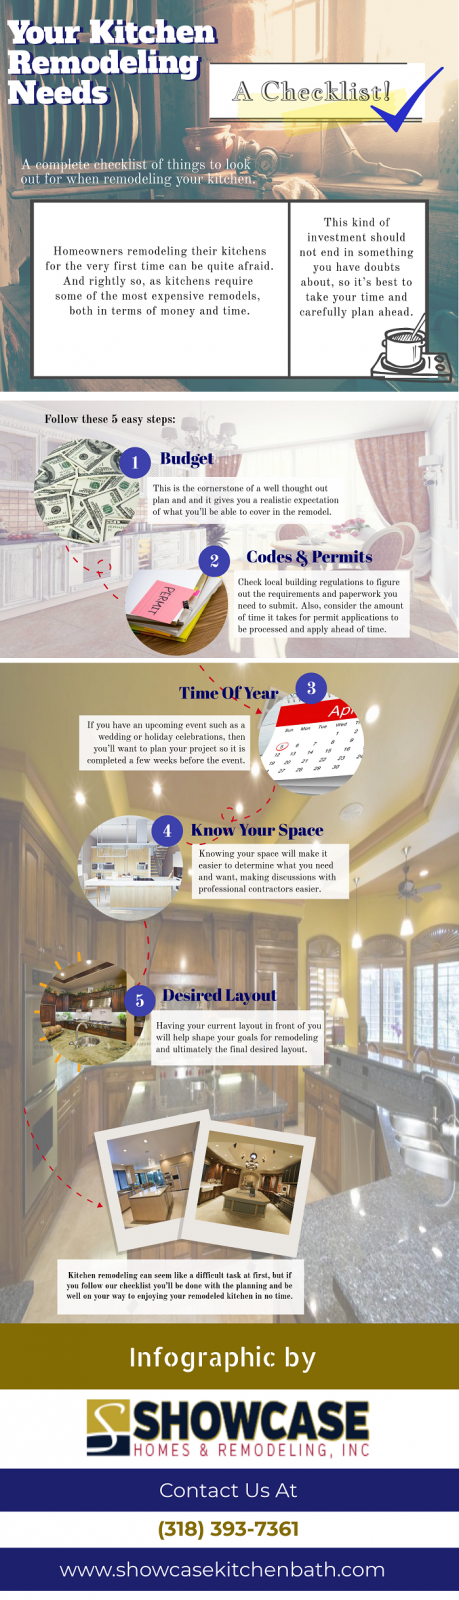 Your Kitchen Remodeling Needs - A Checklist